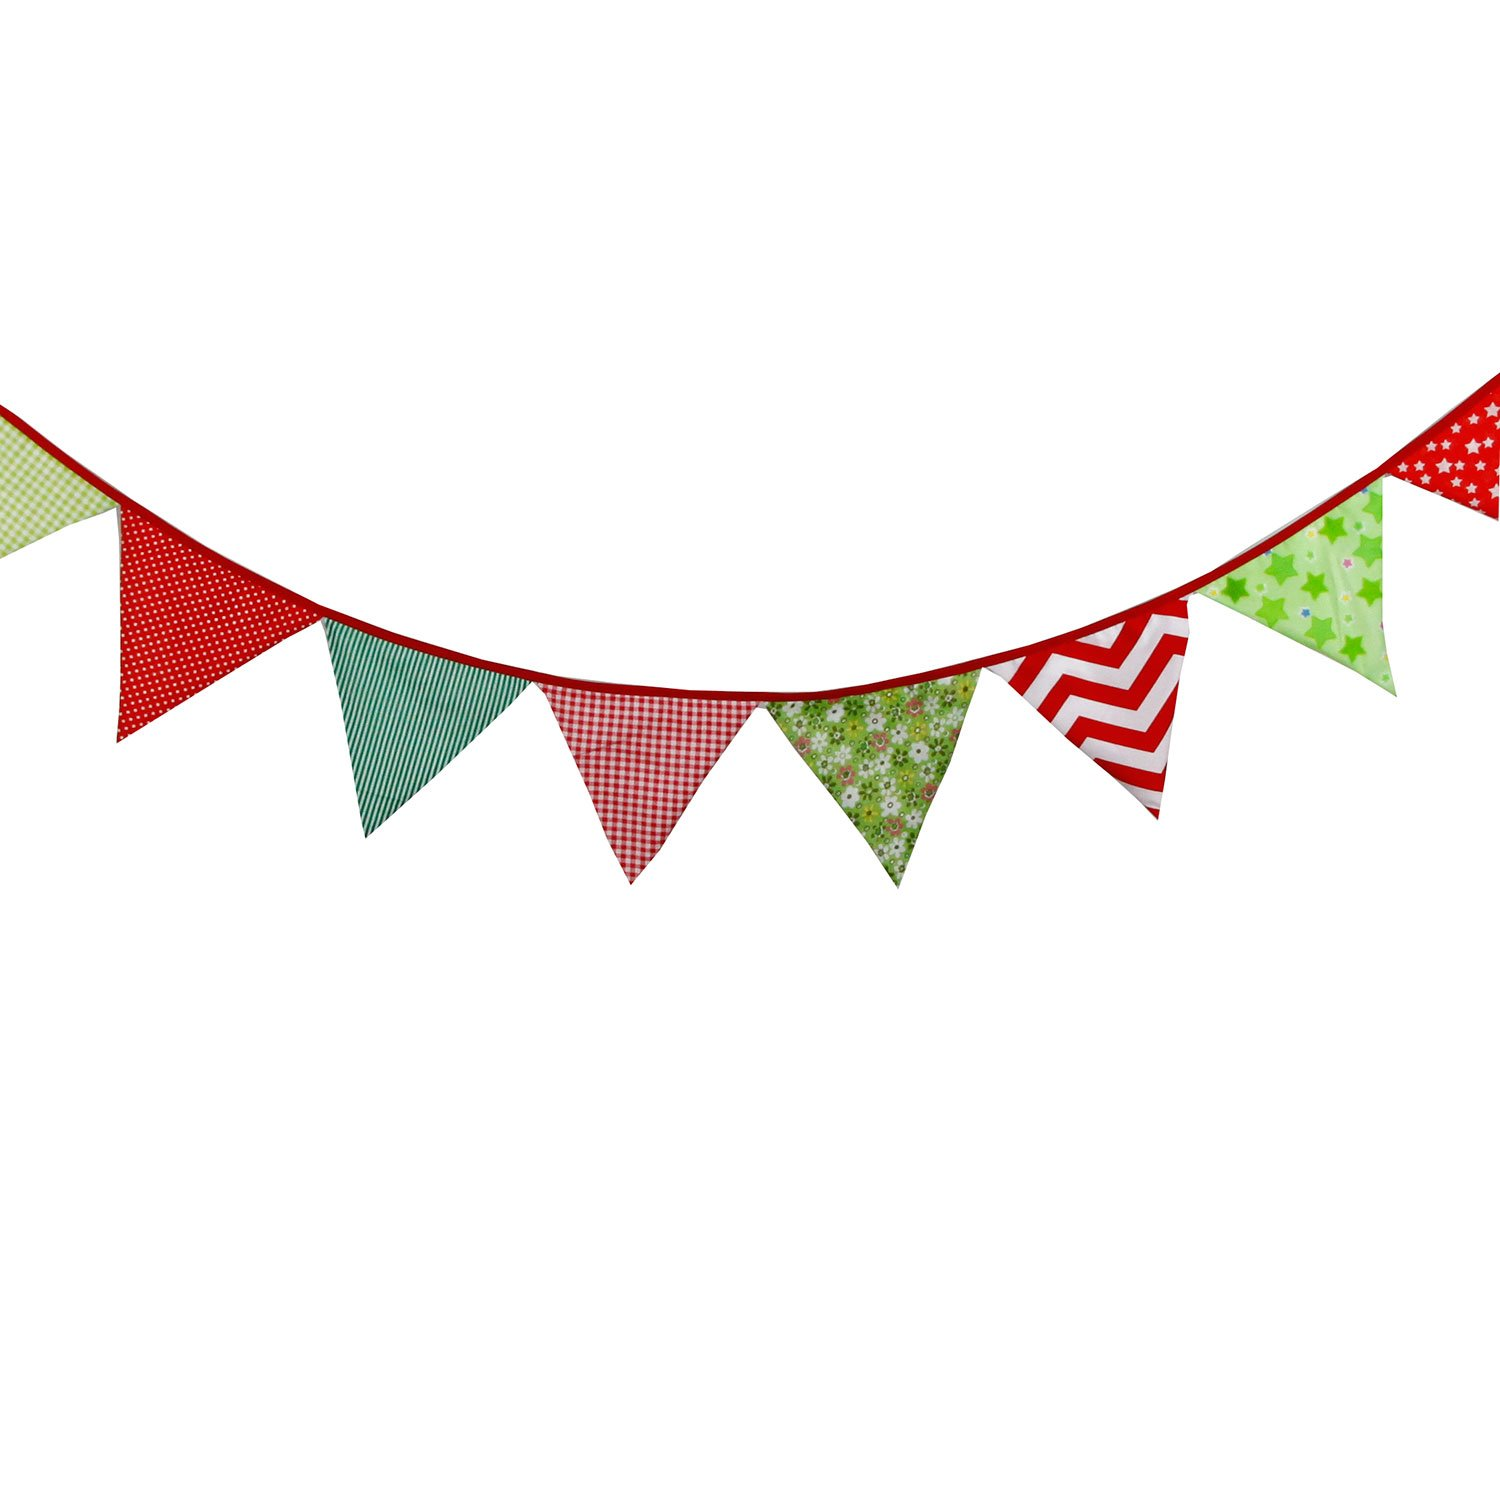 INFEI 3.2M//10.5Ft Christmas Fabric Flags Bunting Banner Garlands for Wedding 6839252 Outdoor /& Home Decoration Birthday Party Multicolored